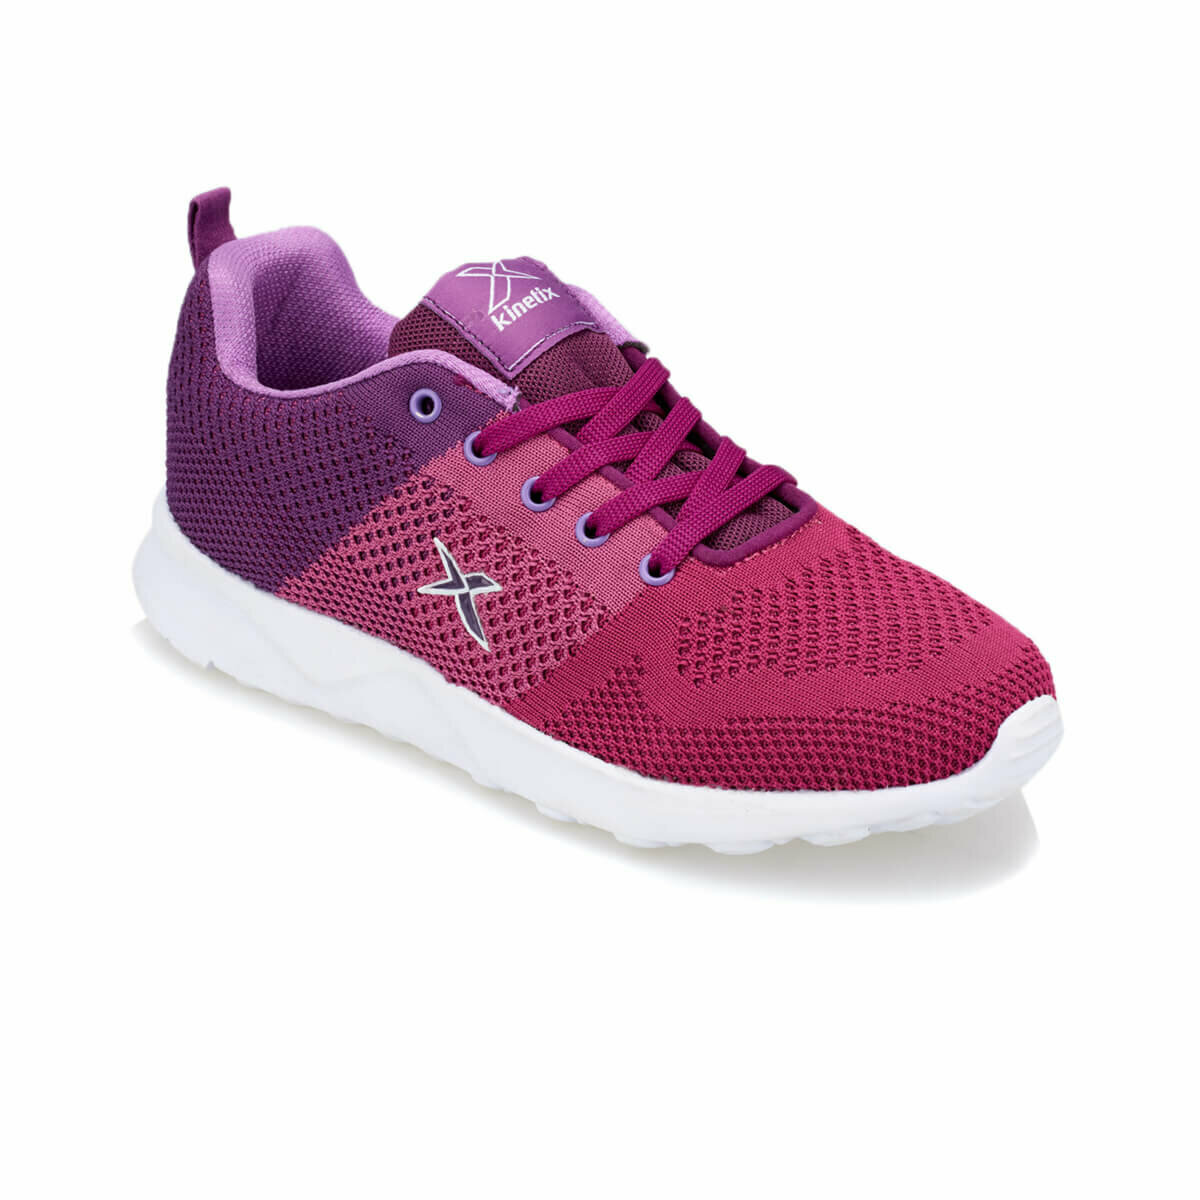 FLO FLUSE Purple Women 'S Sneaker Shoes KINETIX